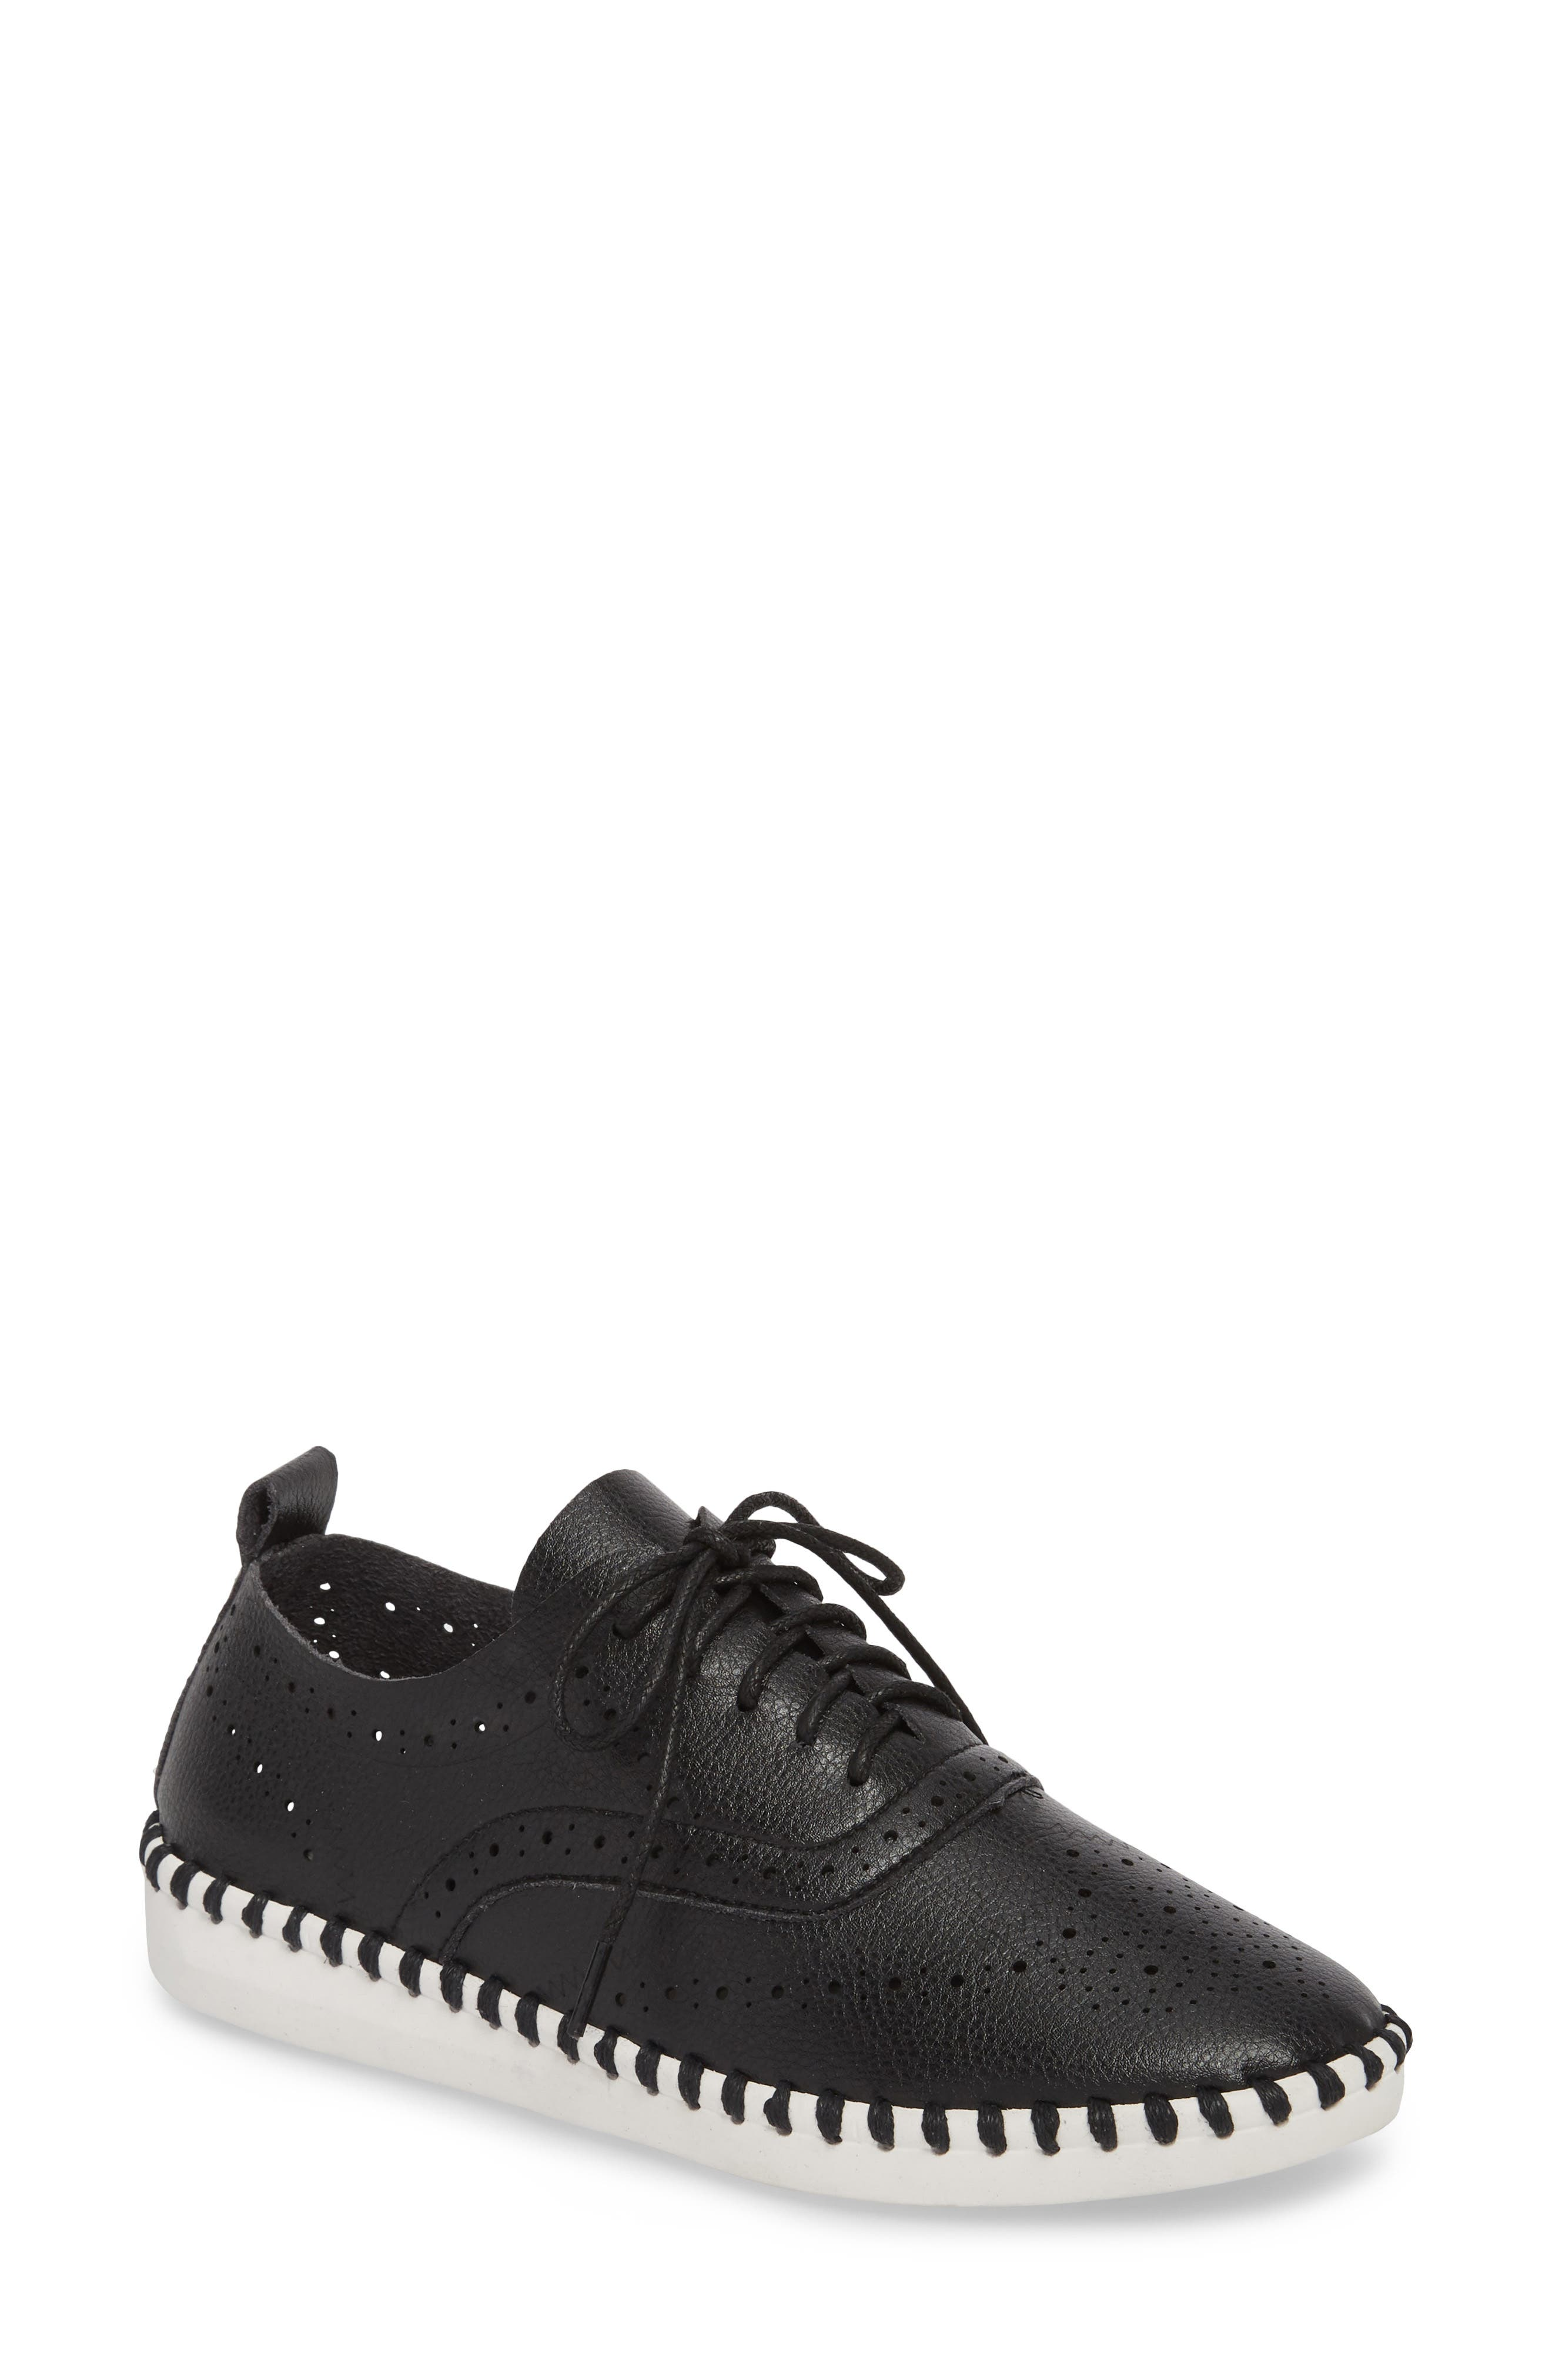 Salinas Waterproof Brogue Lace-Up Sneaker,                         Main,                         color, BLACK FAUX LEATHER